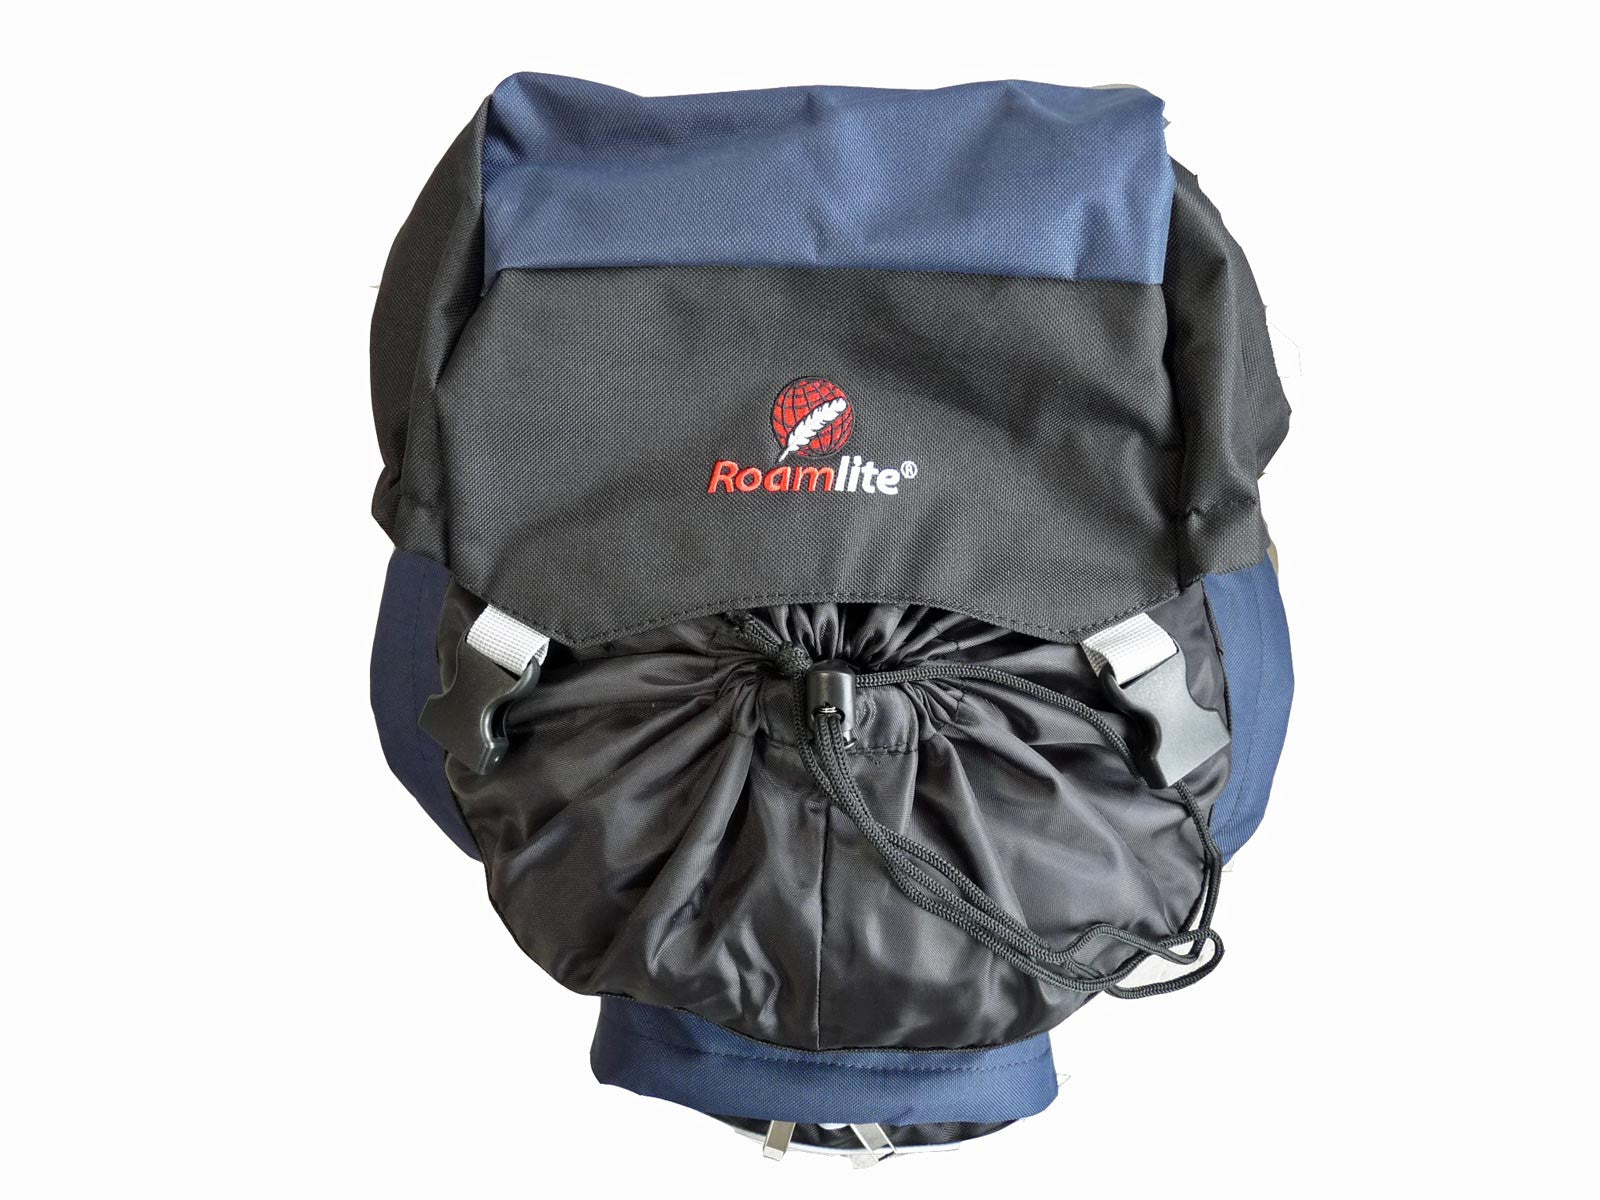 80 100 125 litre backpack blue top view